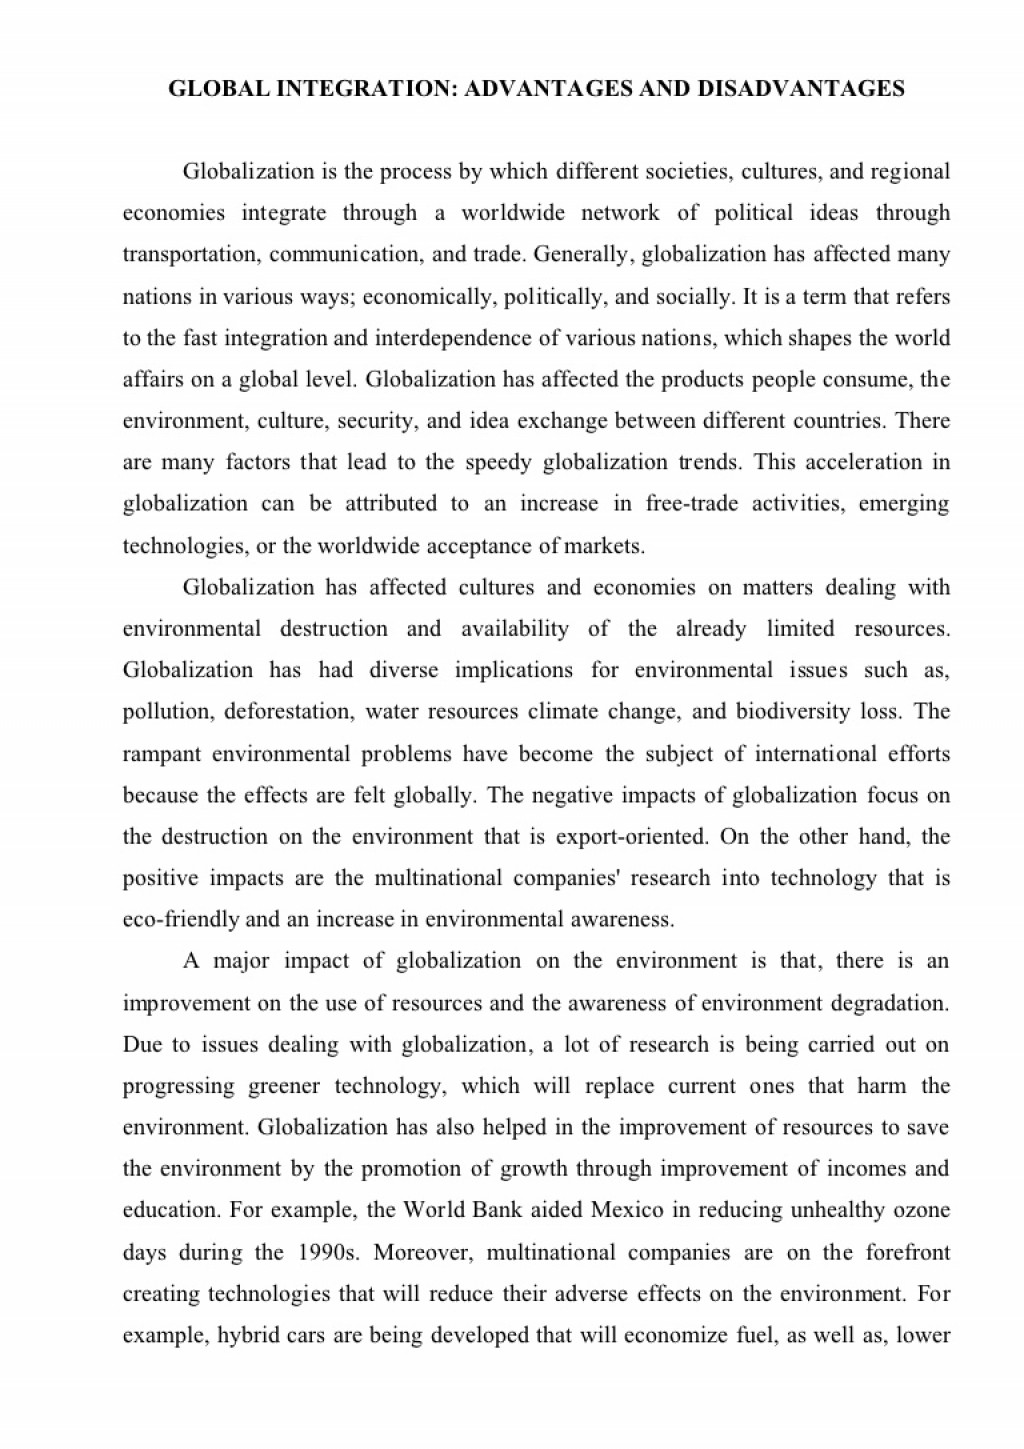 021 Essayglobalization Phpapp02 Thumbnail Essay Example Advantage And Disadvantage Of Shocking Science Advantages Disadvantages In Tamil Pdf Marathi Language English Large